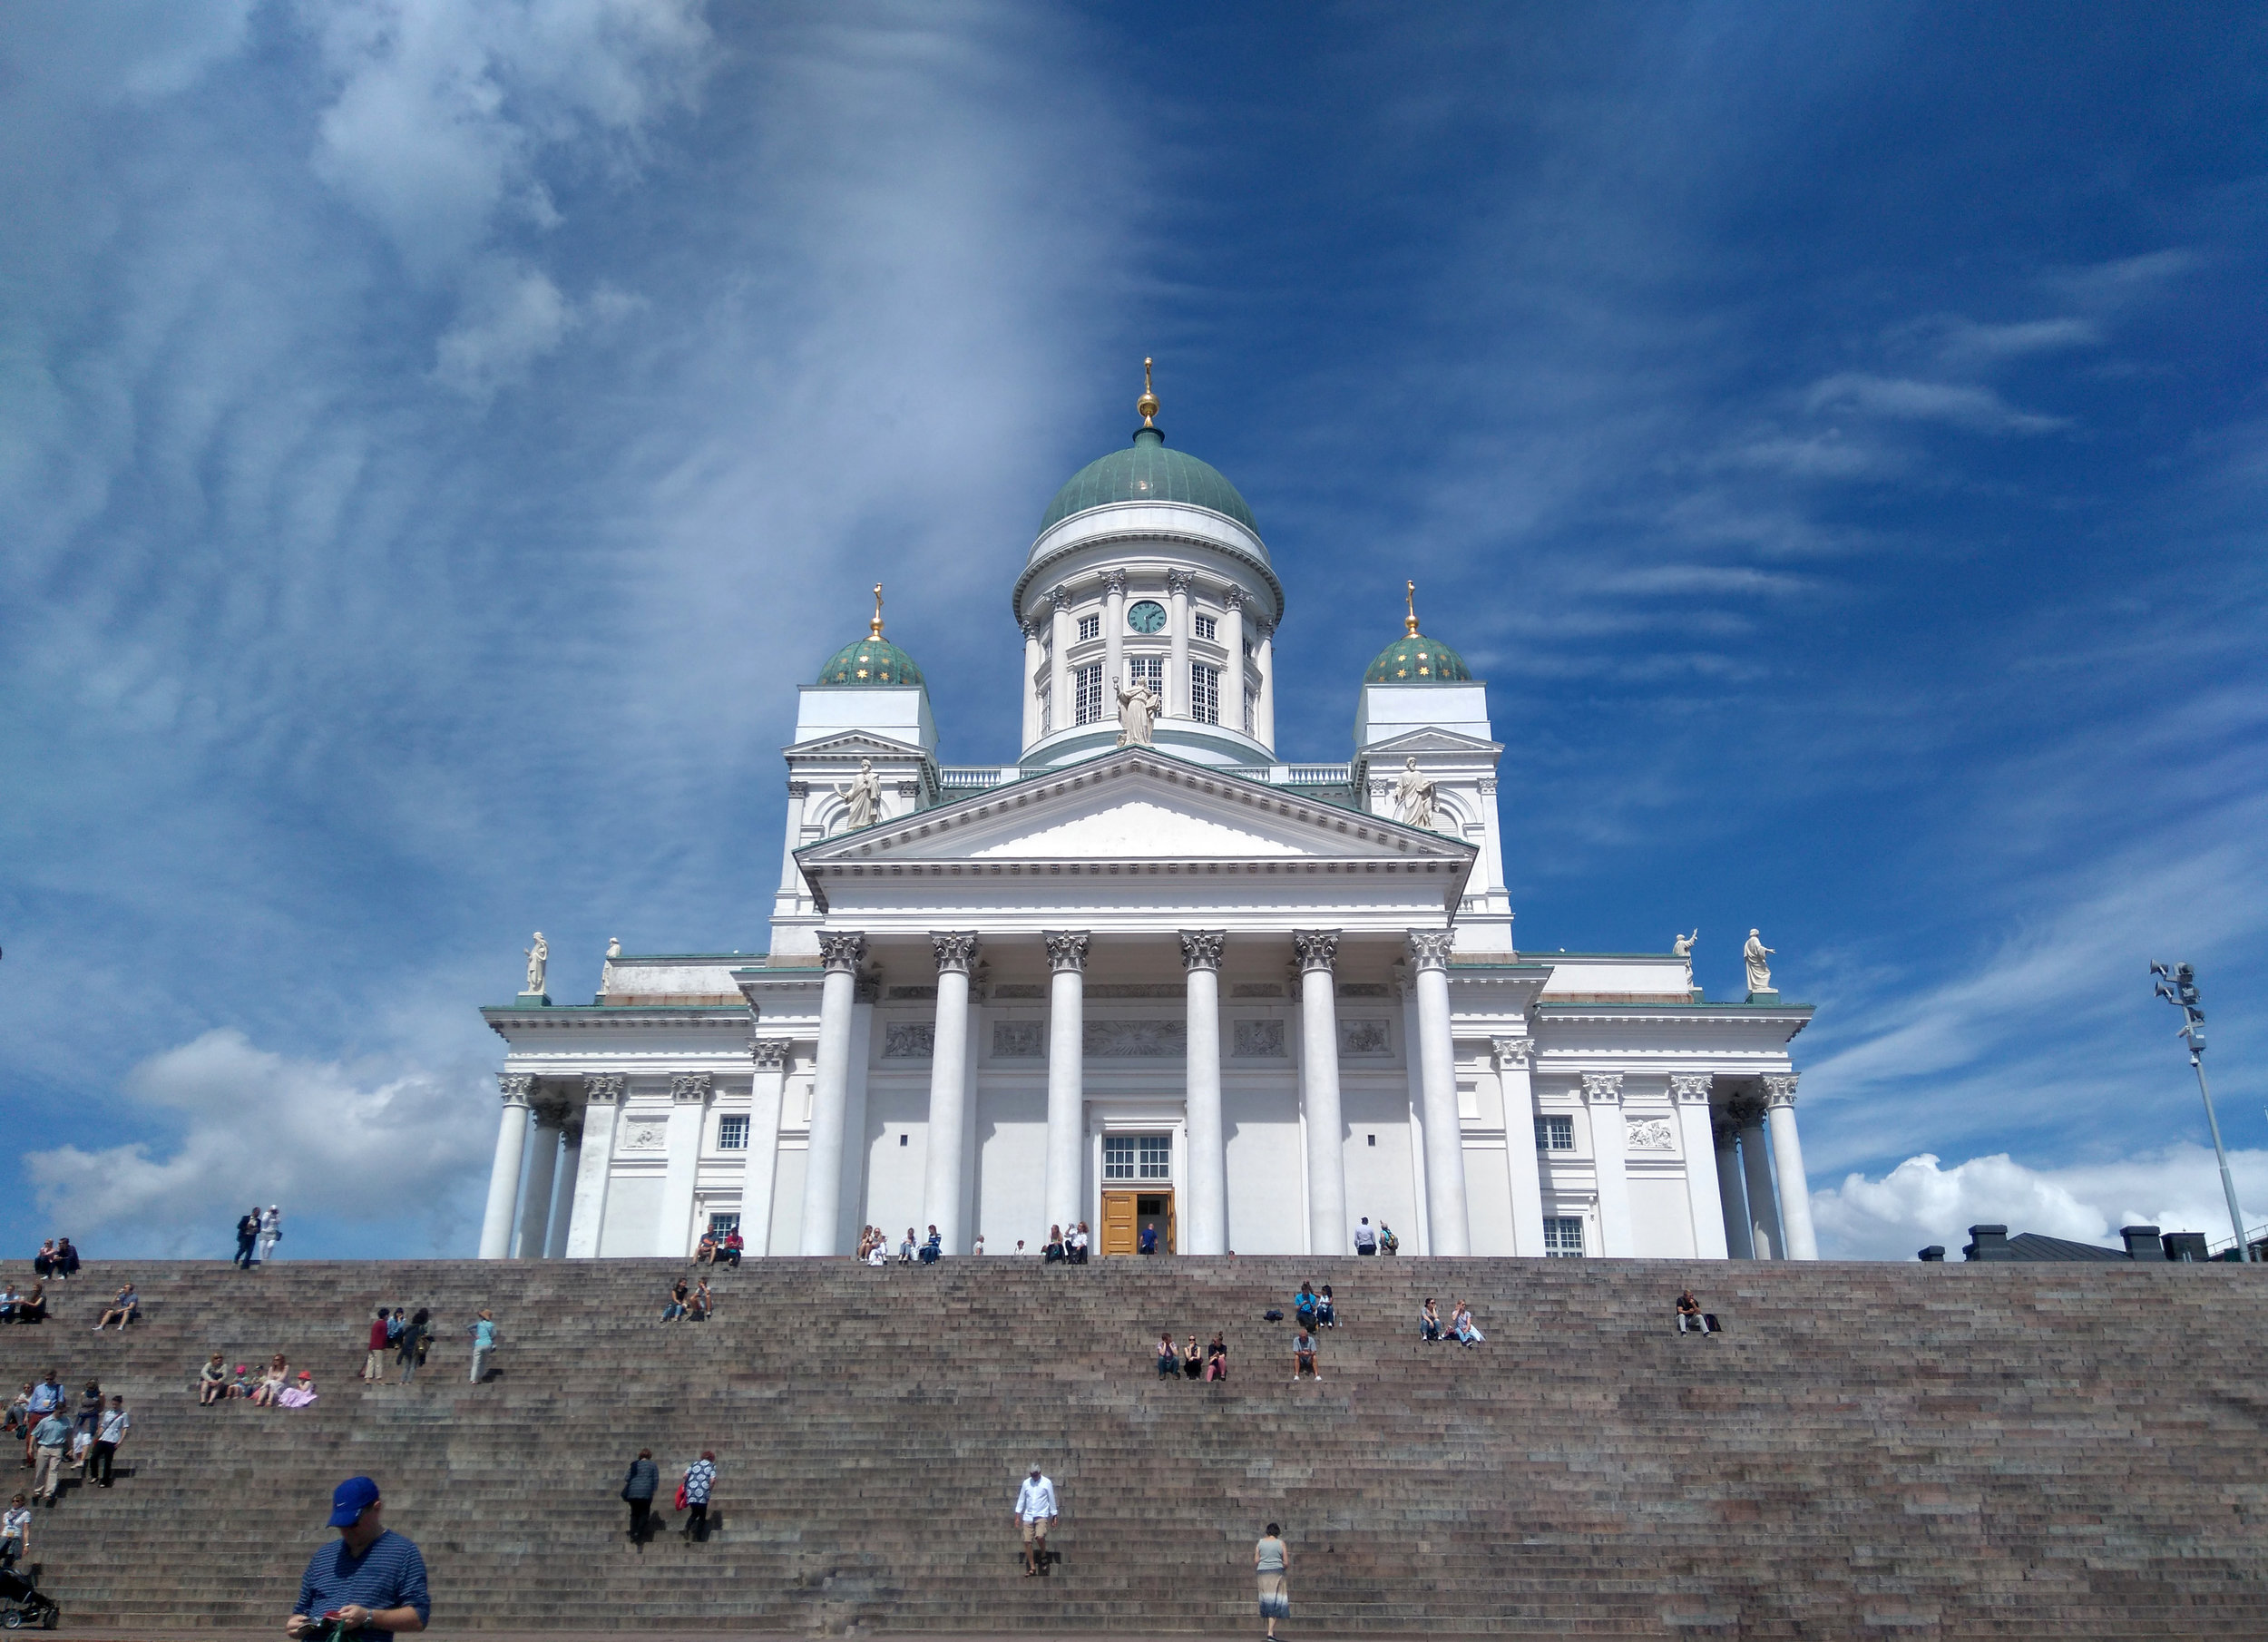 Tourists will be welcomed into Helsinki a little differently than usual before getting to see sights like Helsinki Cathedral (pictured).